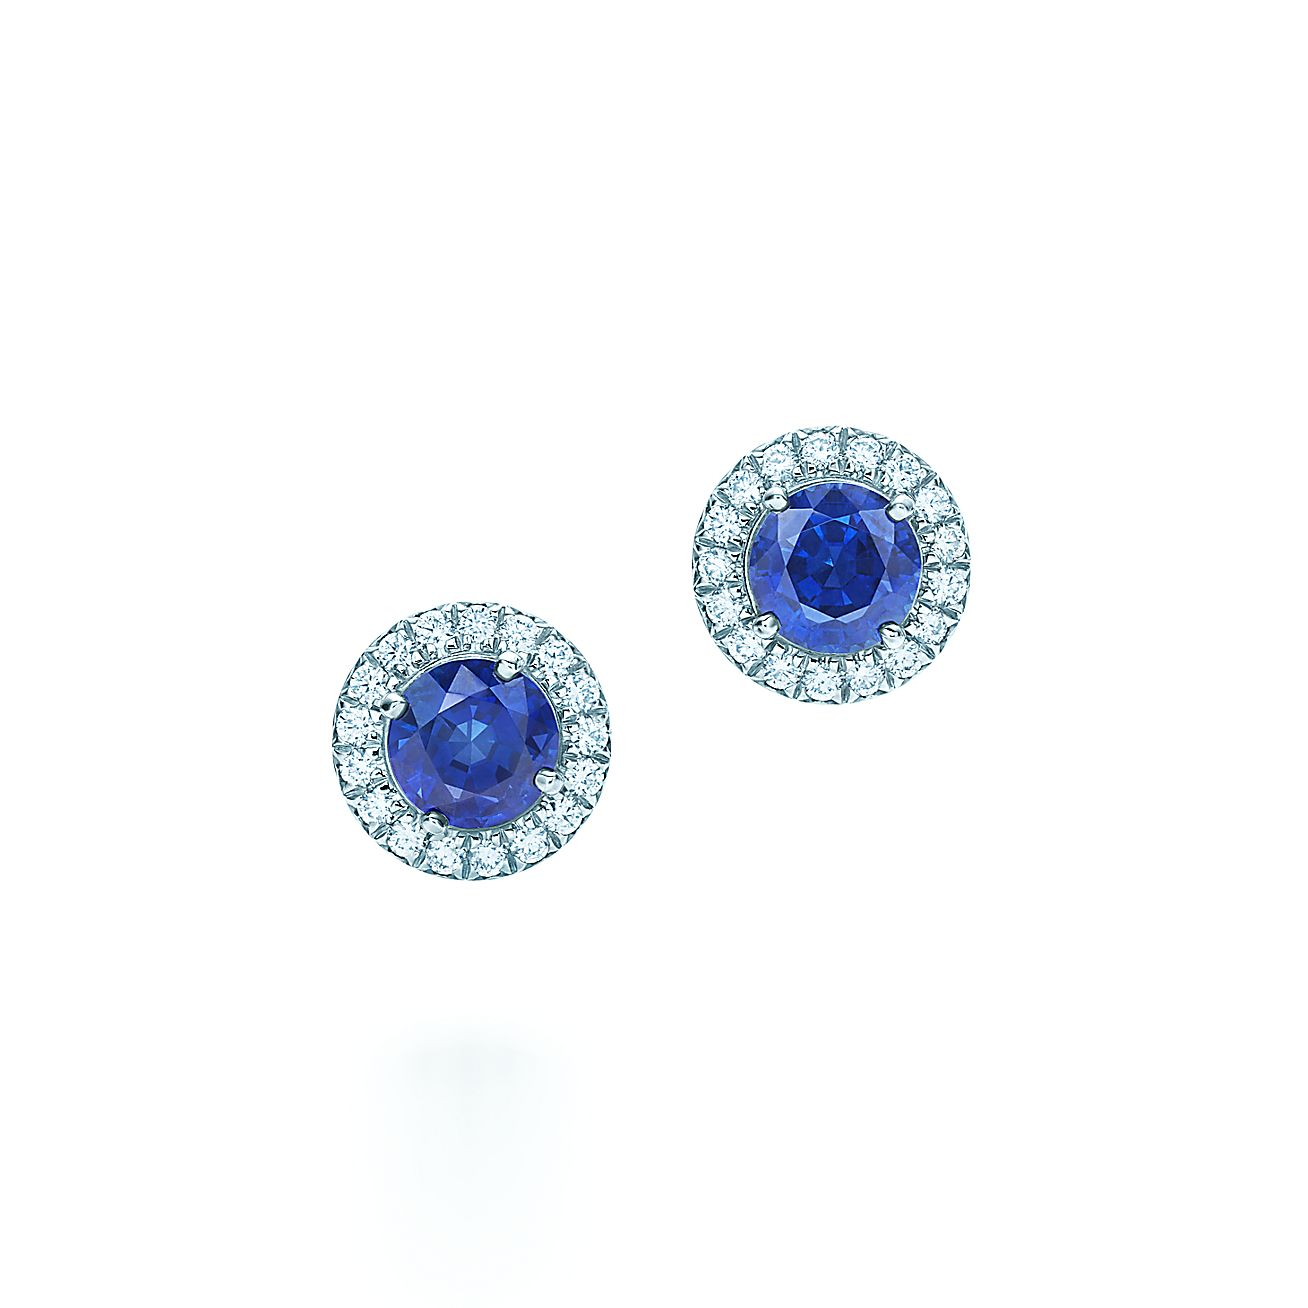 Tiffany Soleste® Earrings In Platinum With Sapphires And Diamonds   Tiffany & Co